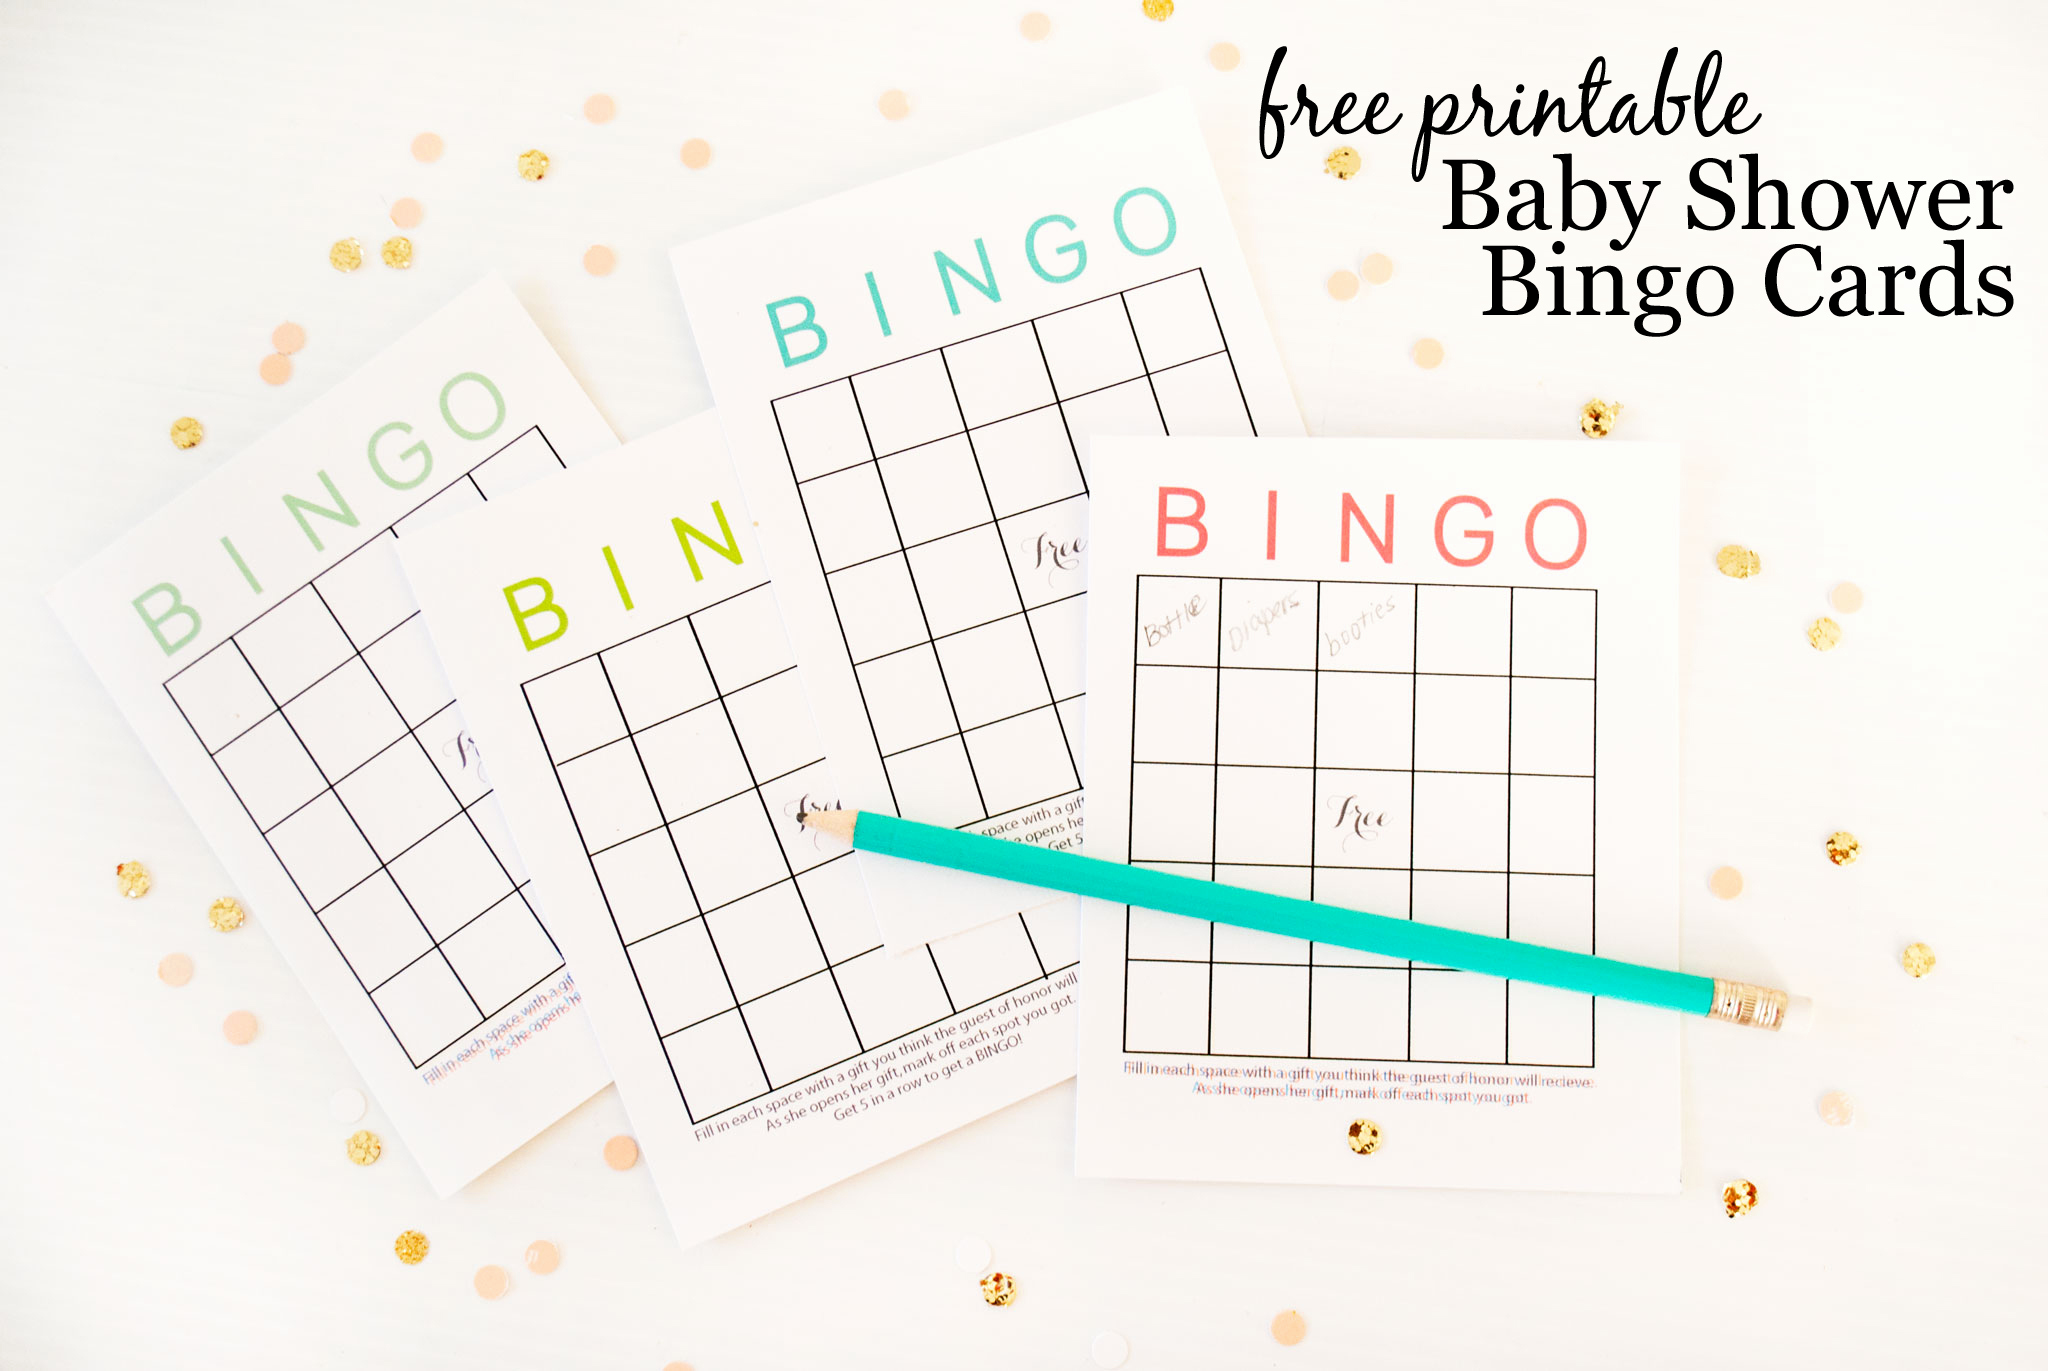 Free Printable Baby Shower Card Awesome Free Printable Baby Shower Bingo Cards Project Nursery